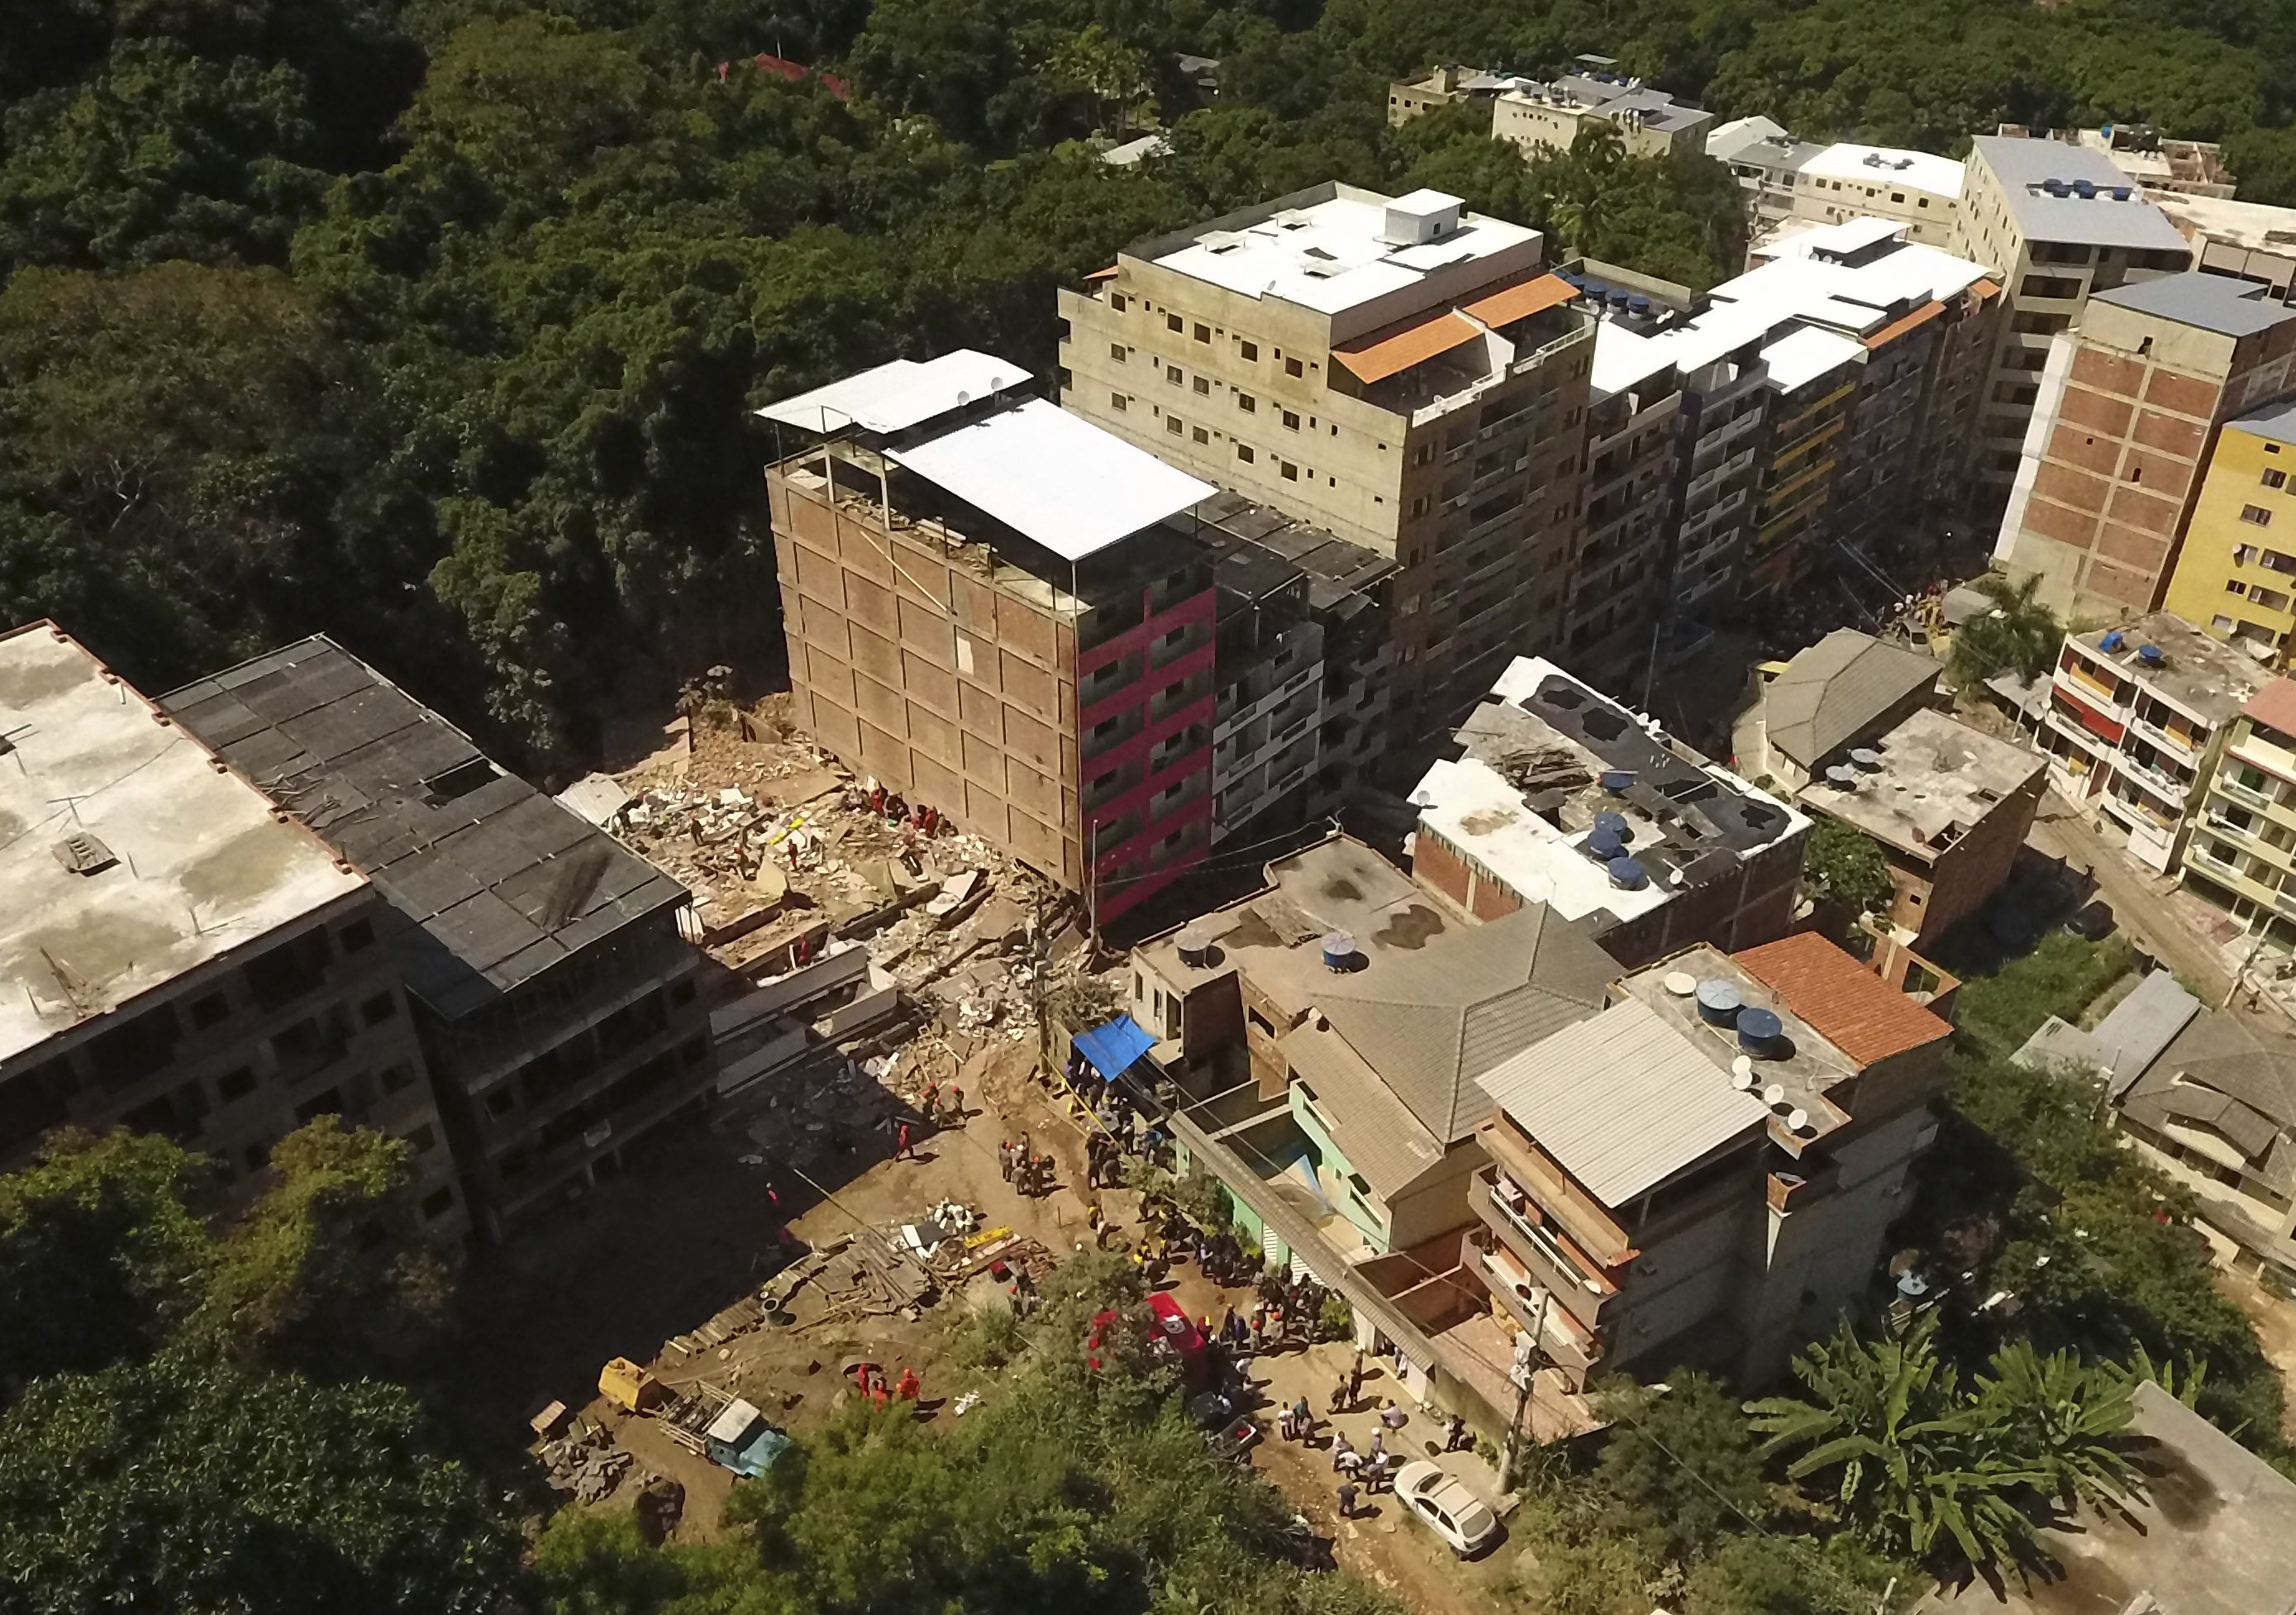 Death toll from Rio building collapse rises to 5